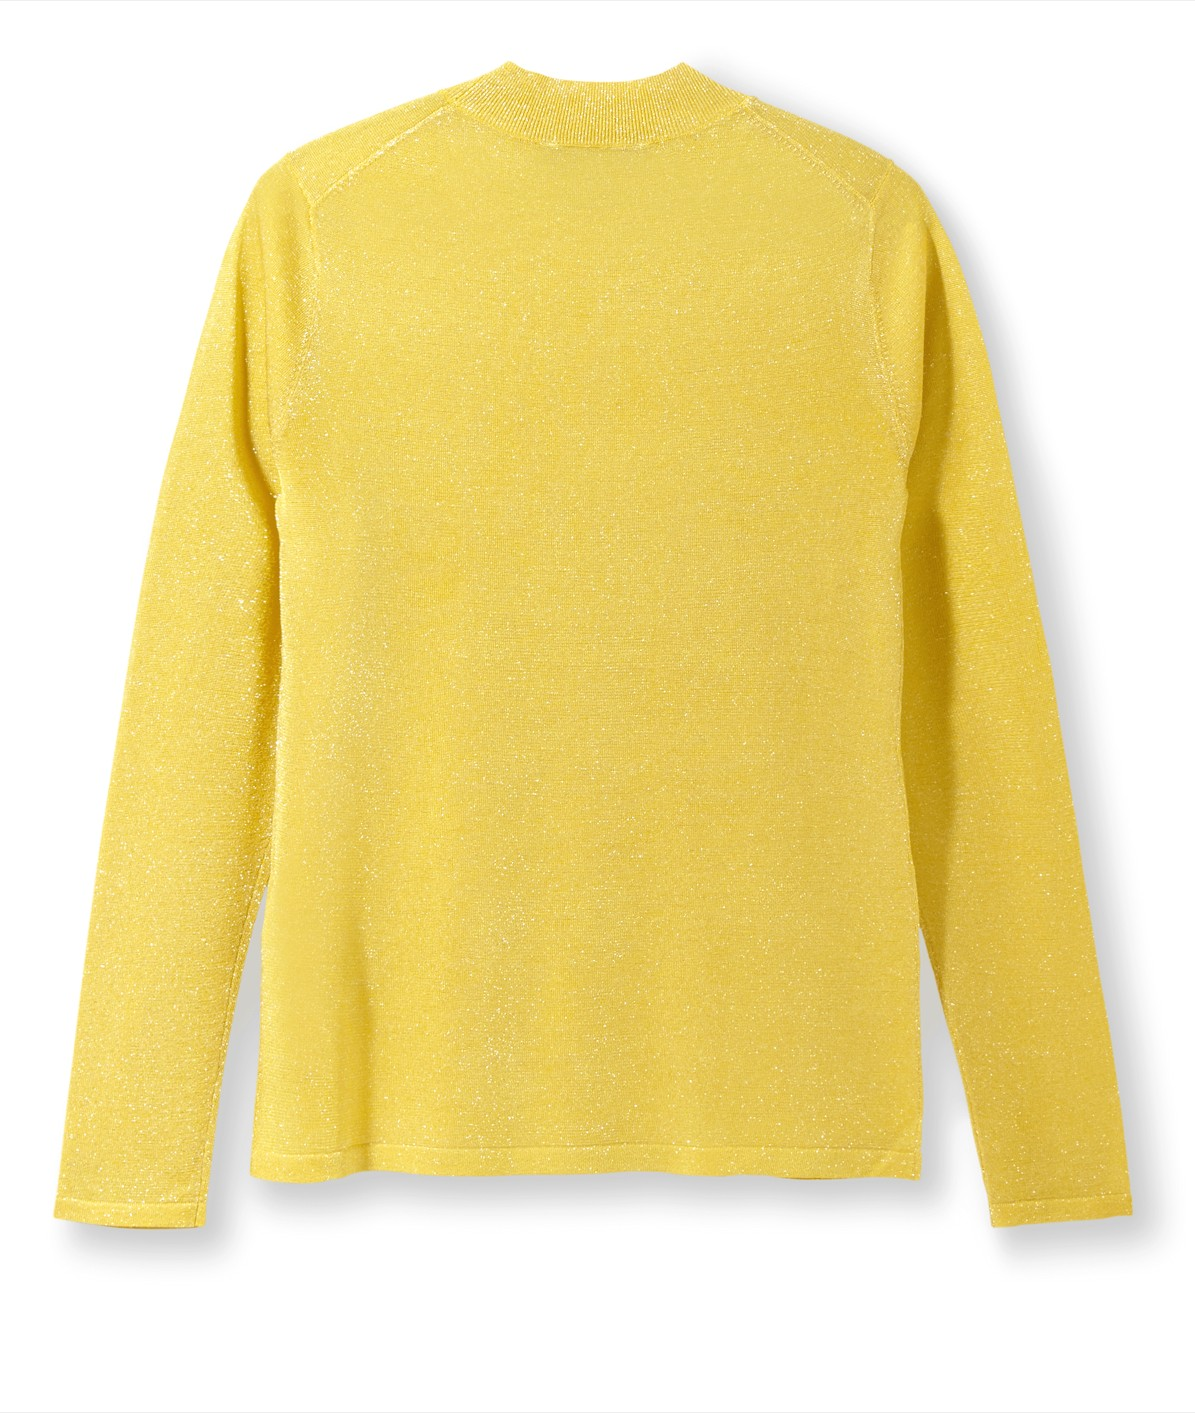 Rollkragenpullover im Colourblocking